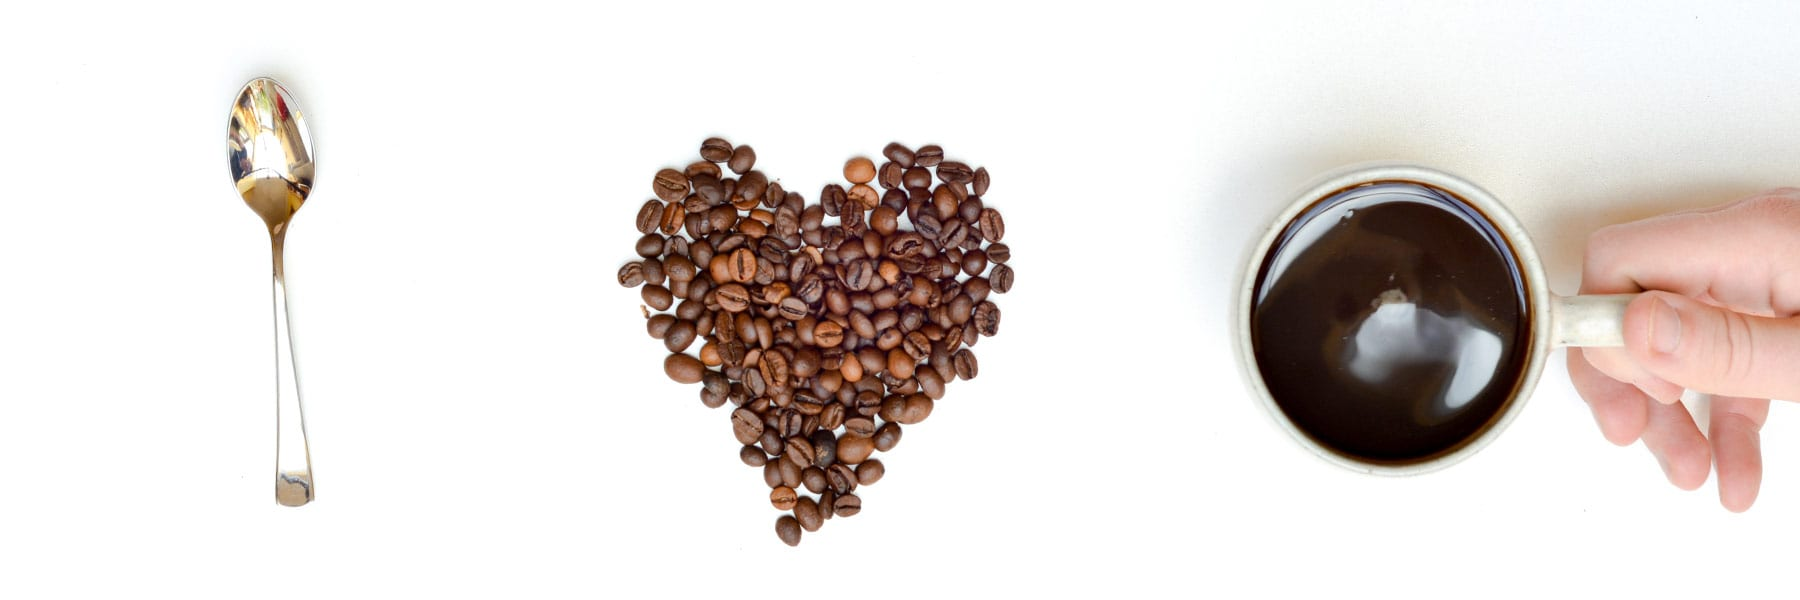 spoon, coffee beans layed out in heart, and cup of coffee